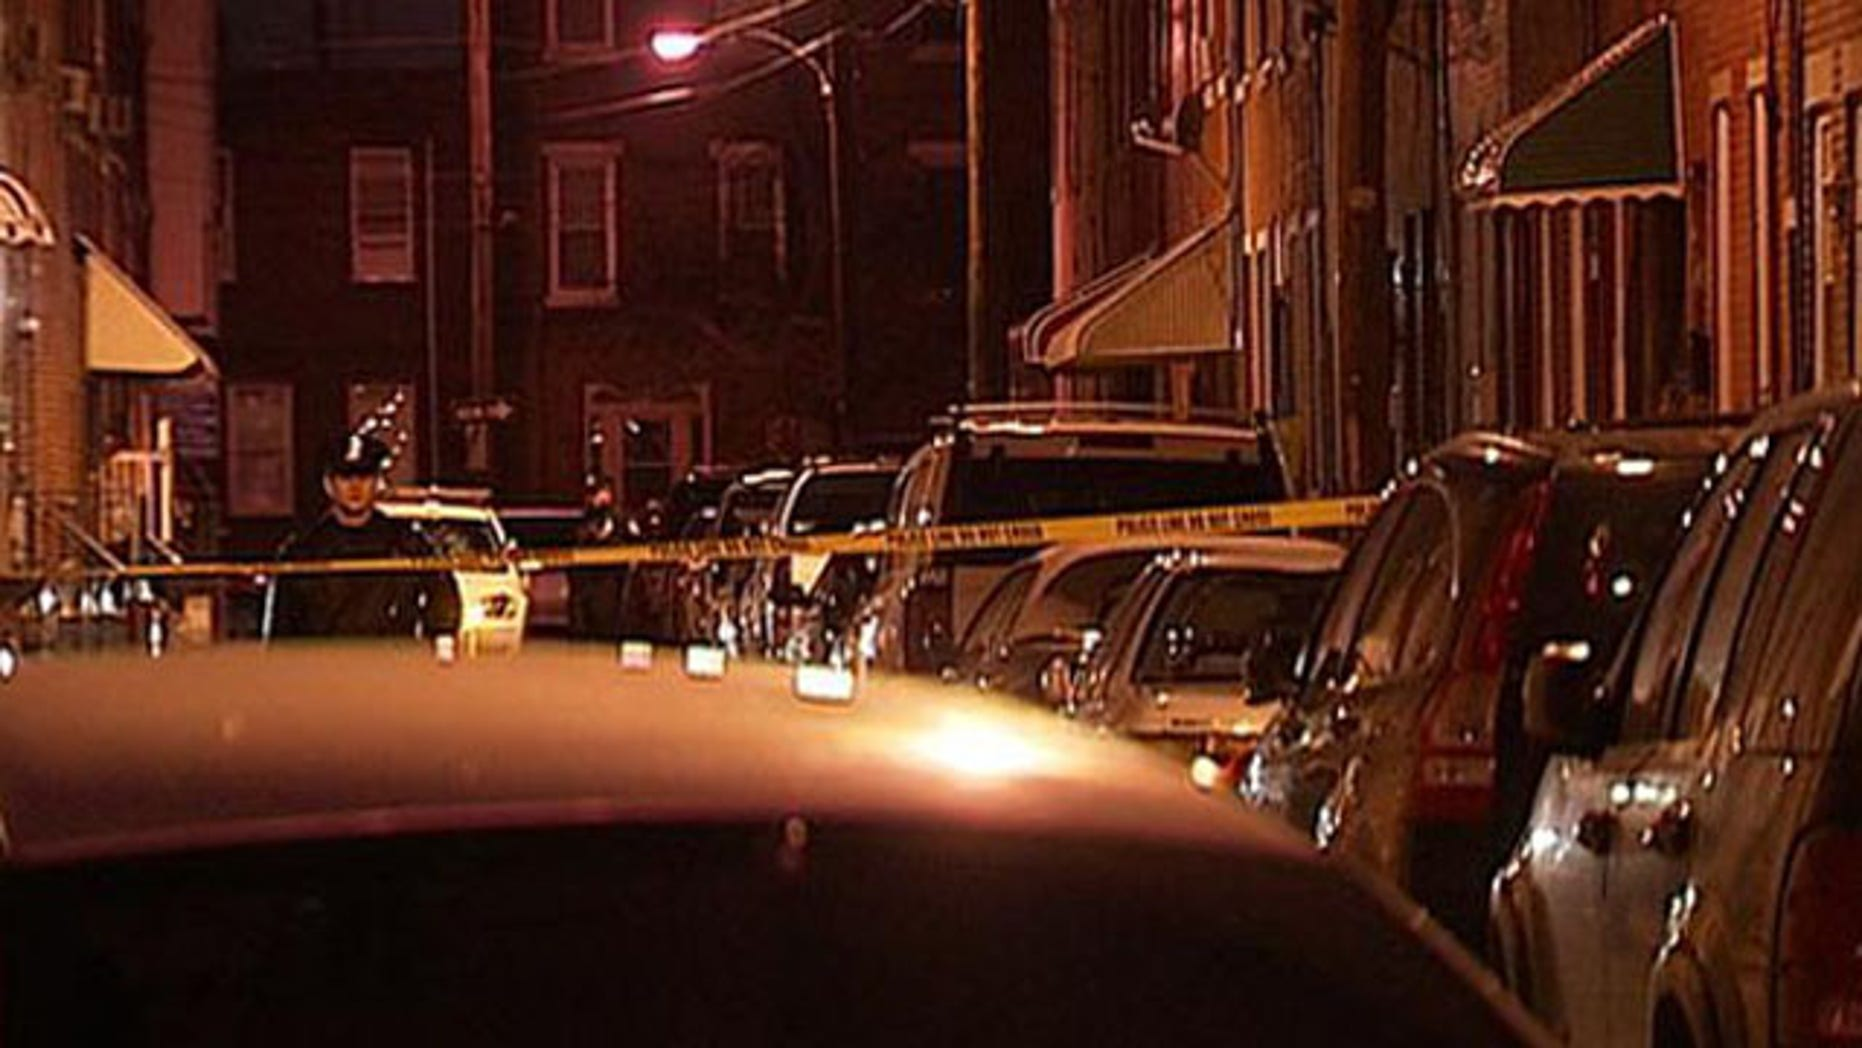 Mar. 31, 2013: Police respond to a home invasion in Philly where authorities say the homeowner shot and killed one of the would-be robbers.